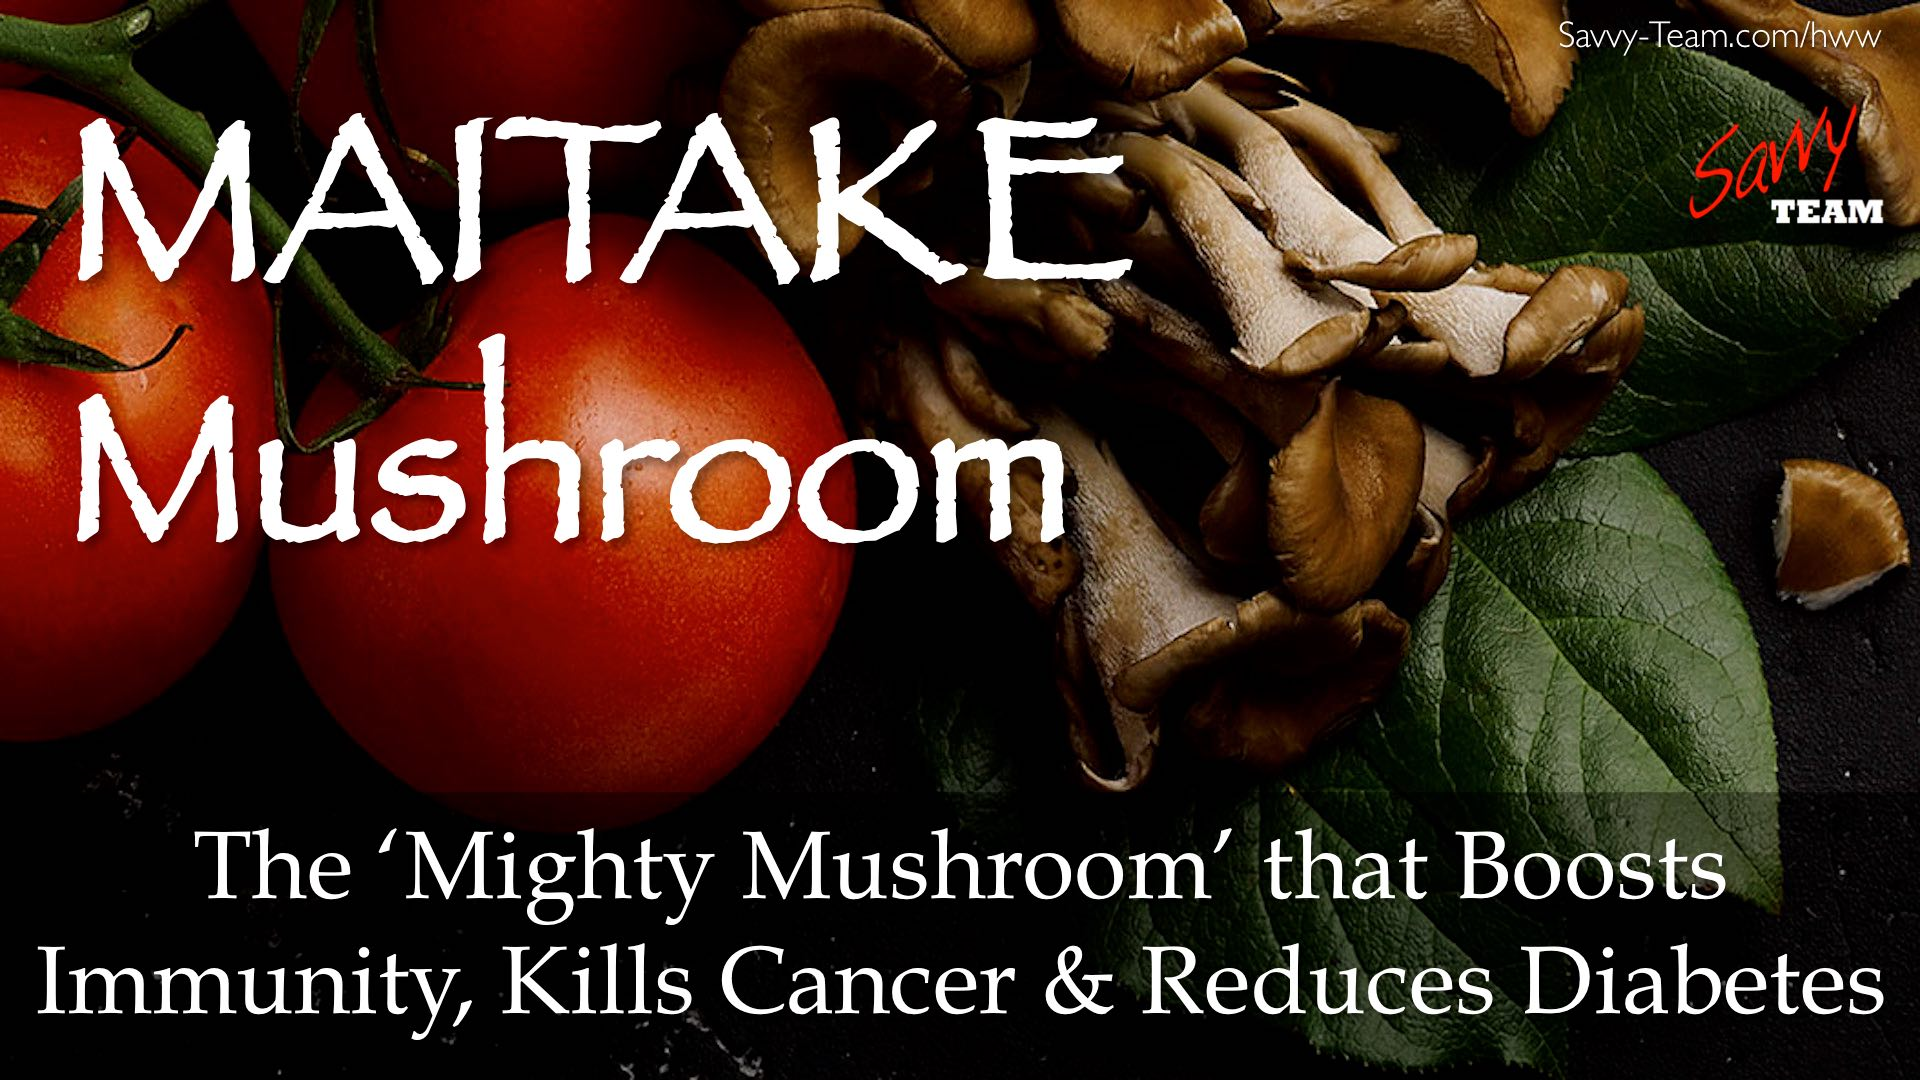 MAITAKE MUSHROOM: The 'Mighty Mushroom' that Boosts Immunity, Kills Cancer & Reduces Diabetes.